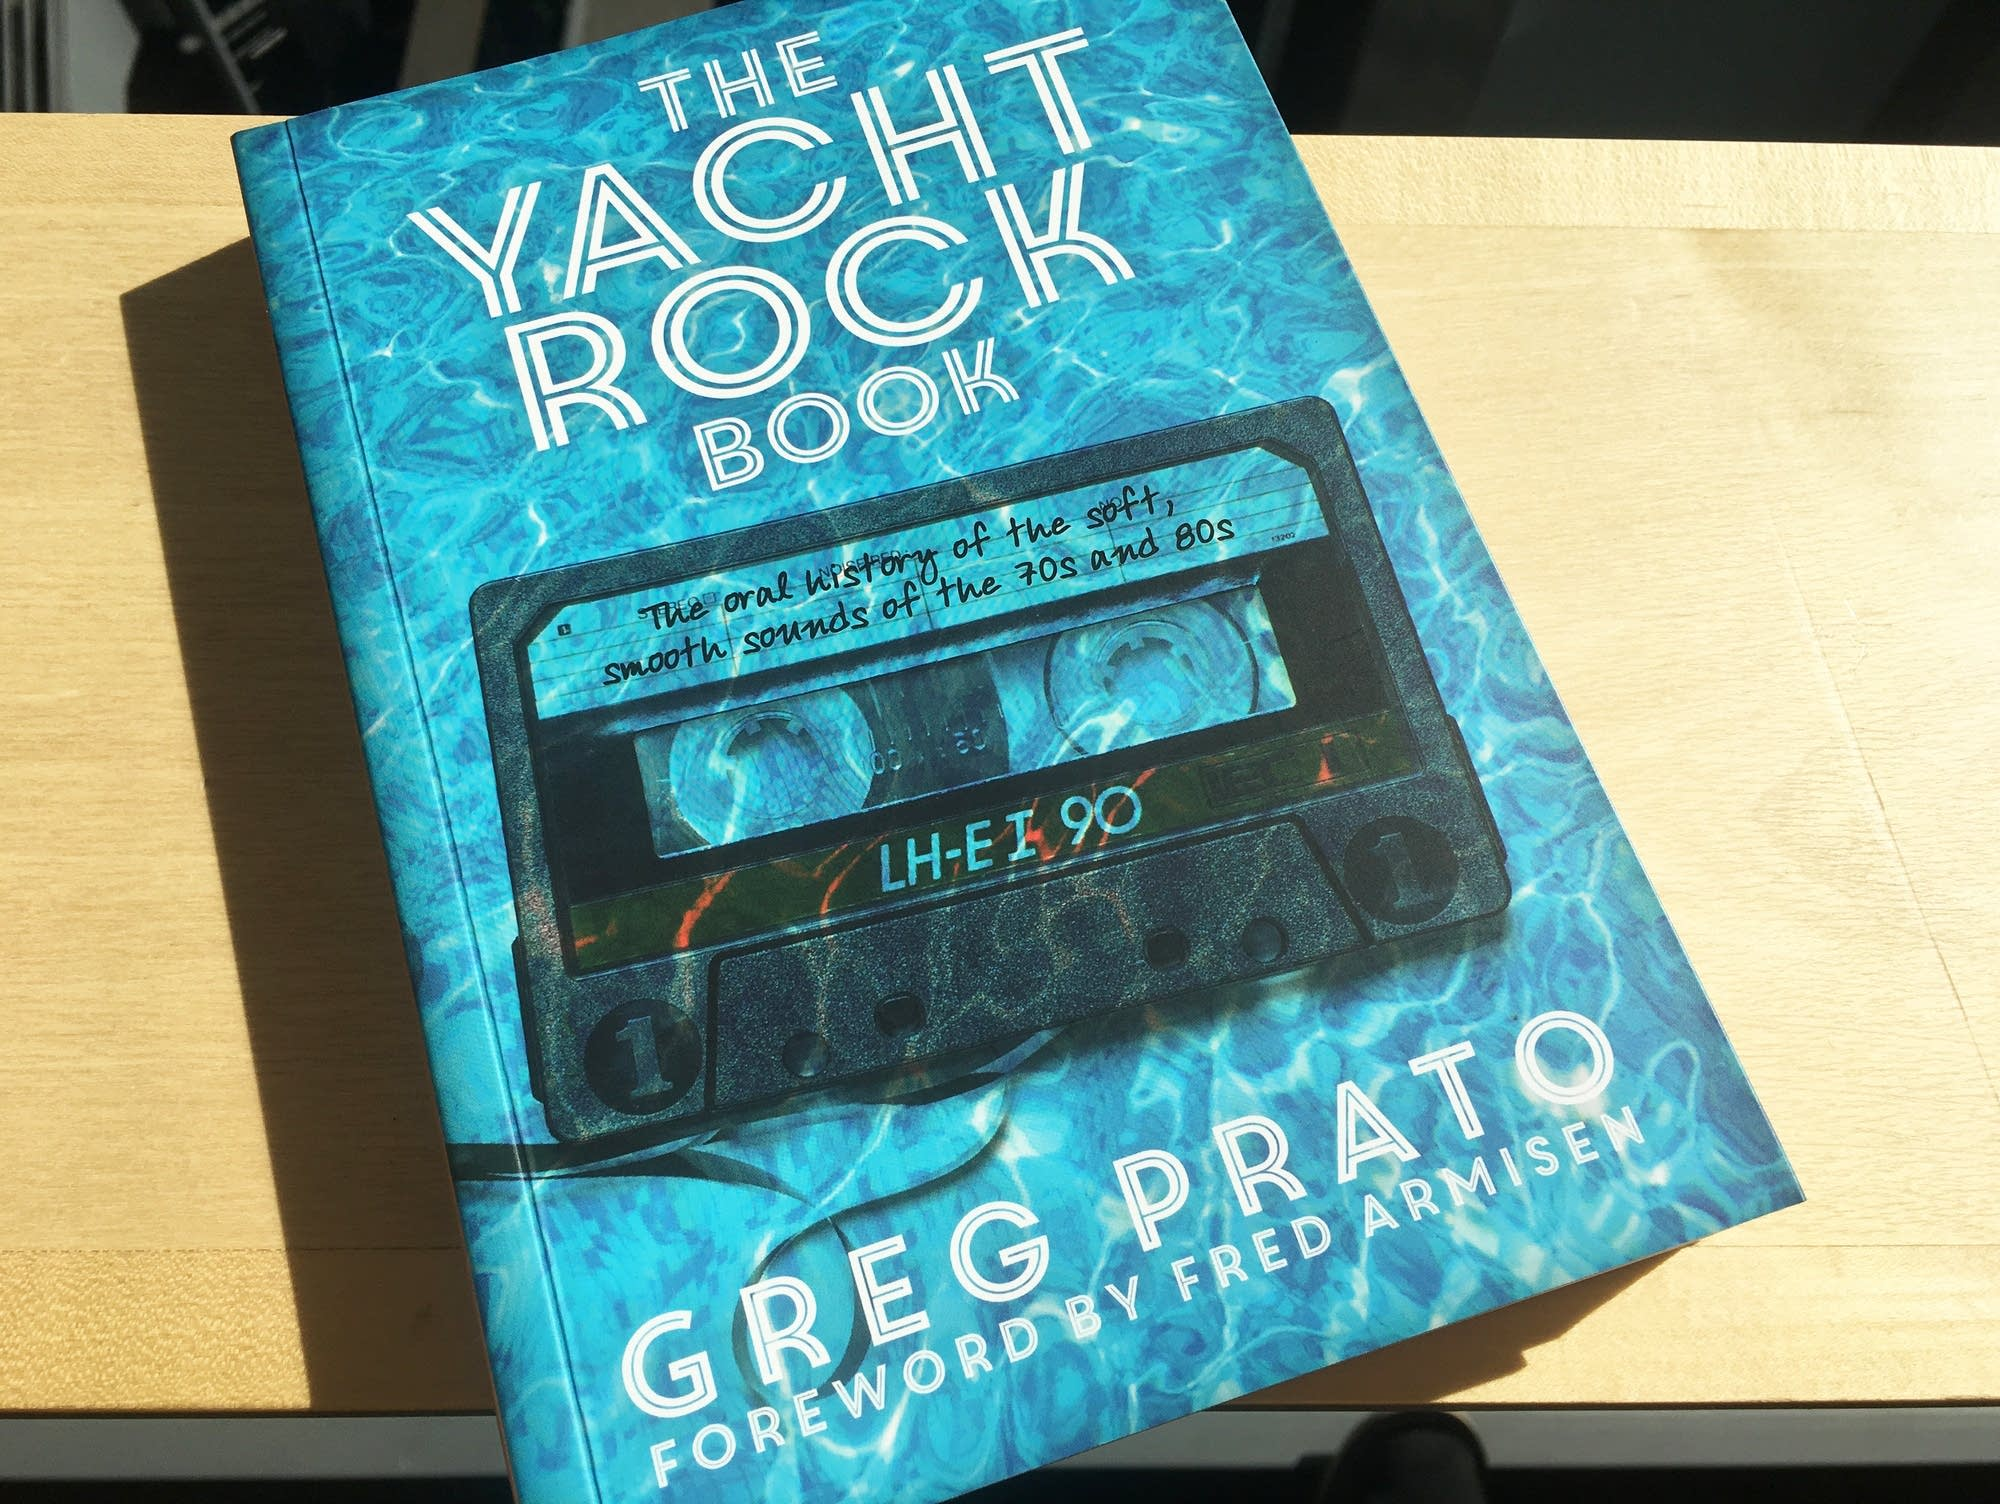 Greg Prato's 'The Yacht Rock Book.'